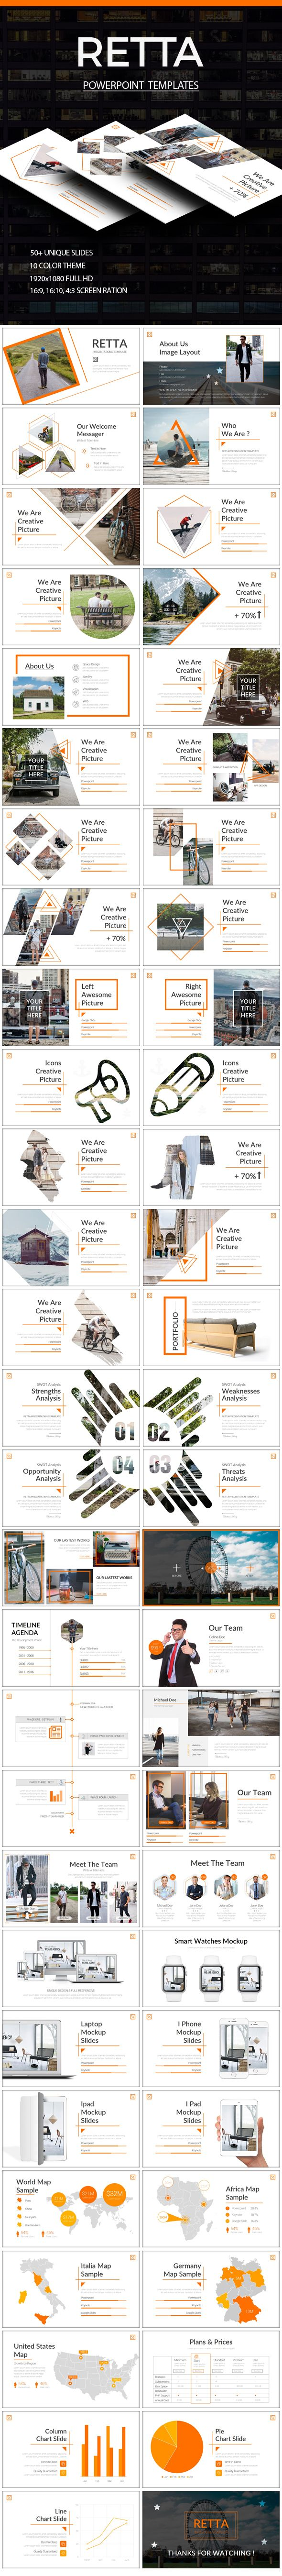 RETTA Powerpoint Template (PowerPoint Templates)